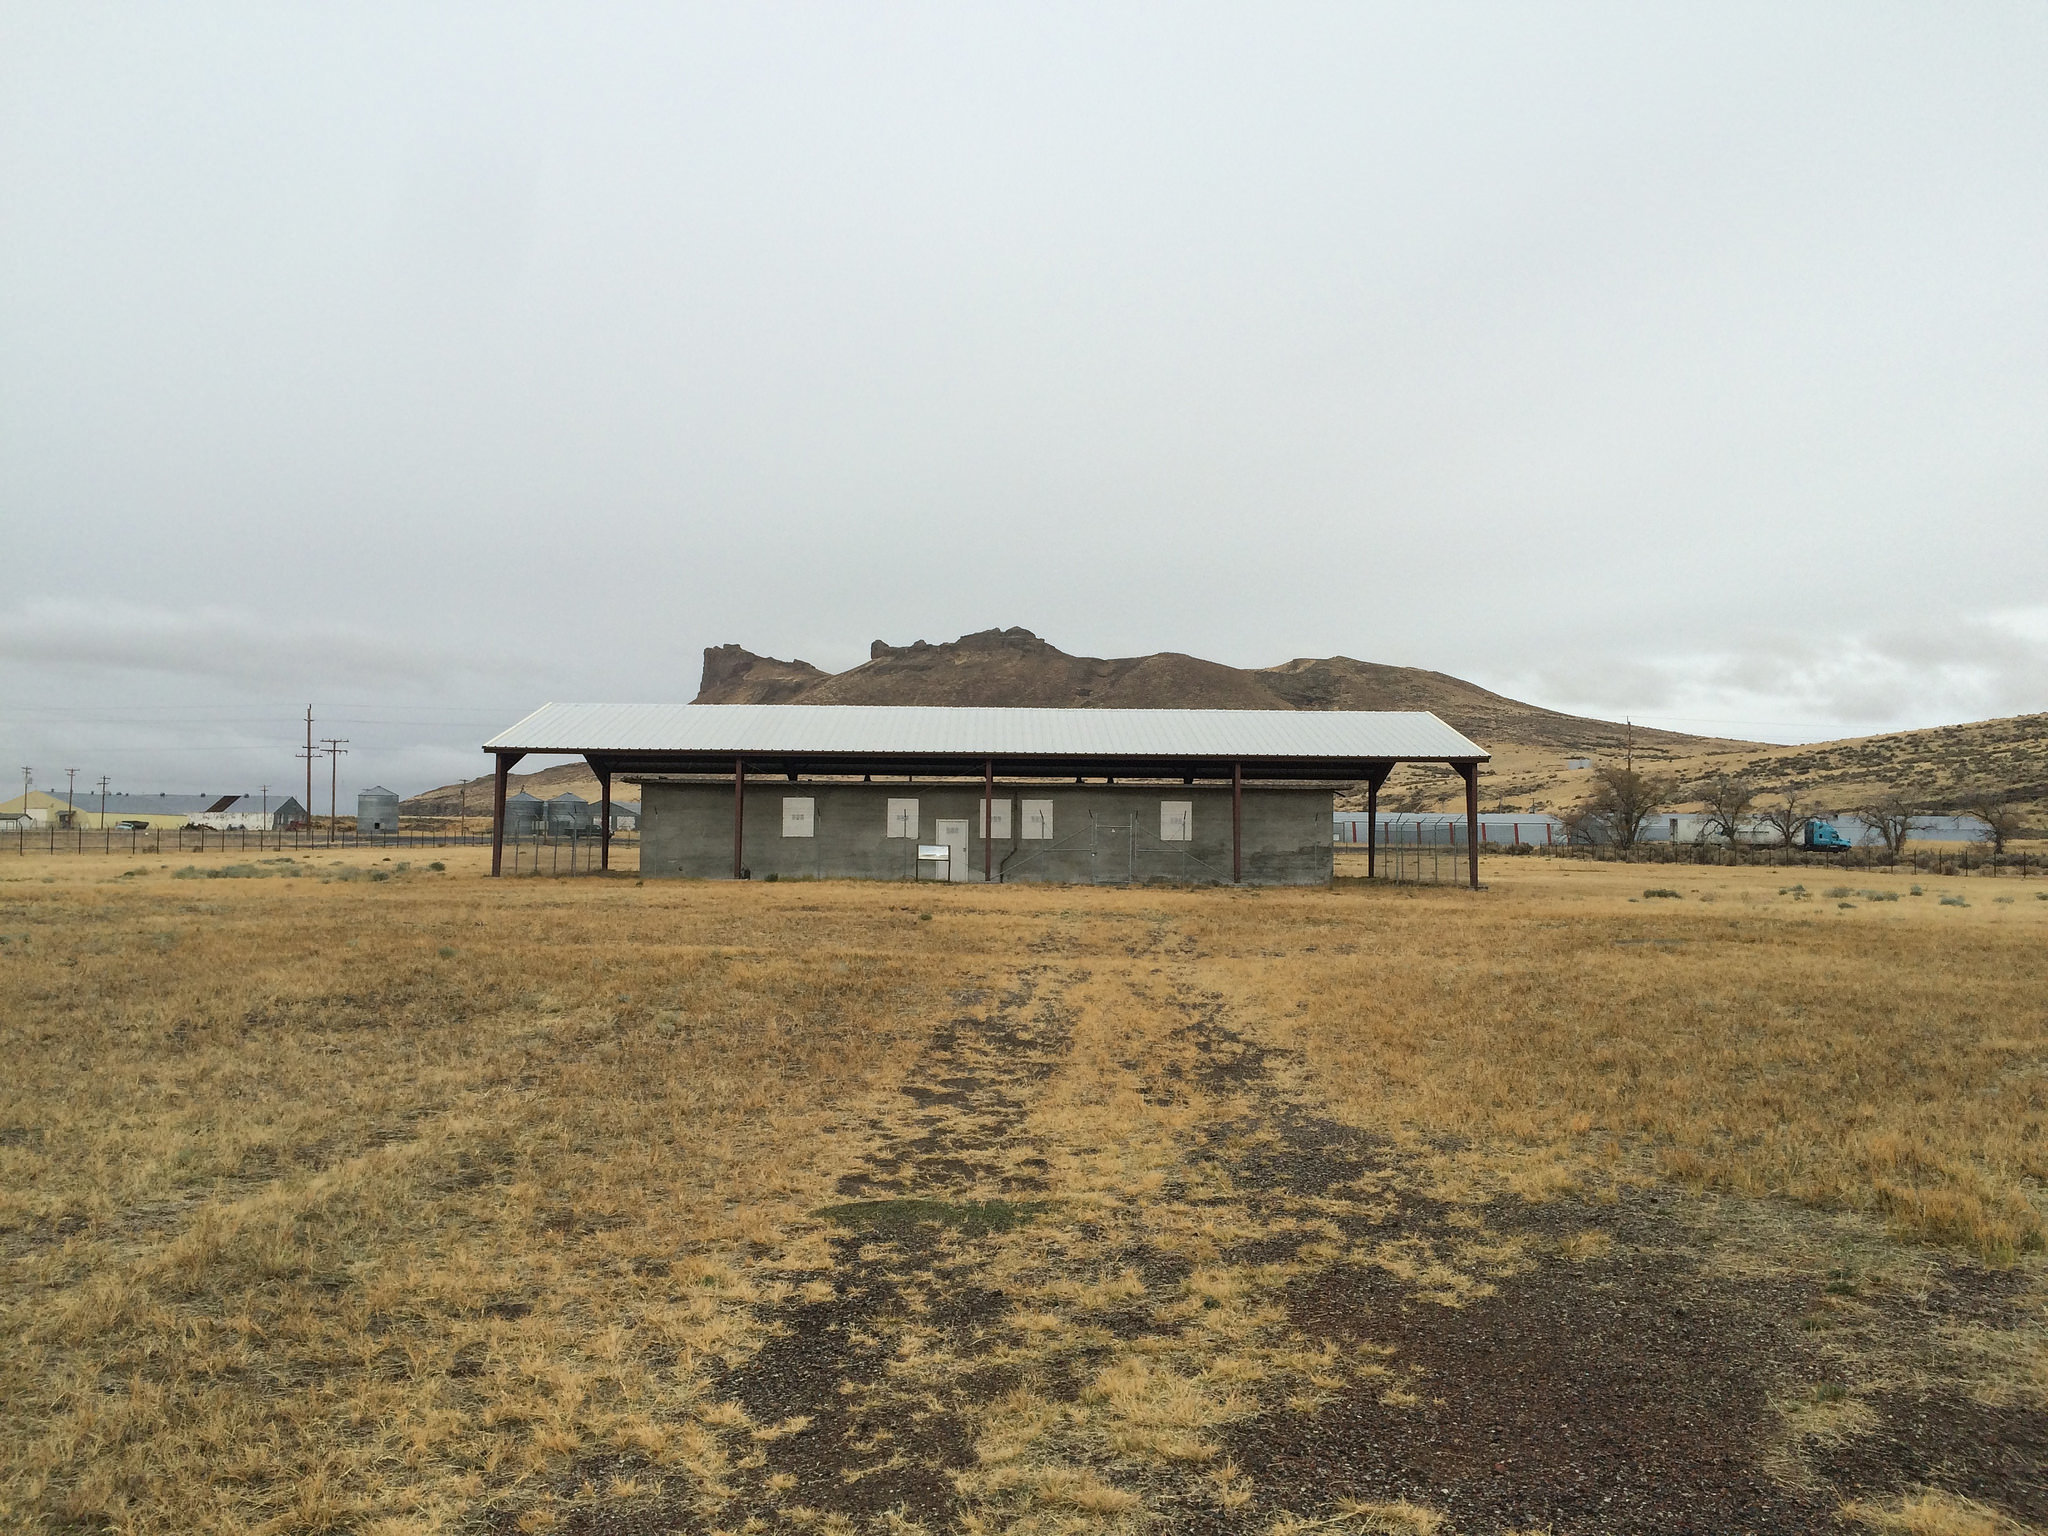 The Tule Lake Segregation Center was the most punitive of the Japanese American internment camps. Seen here: The old jail.